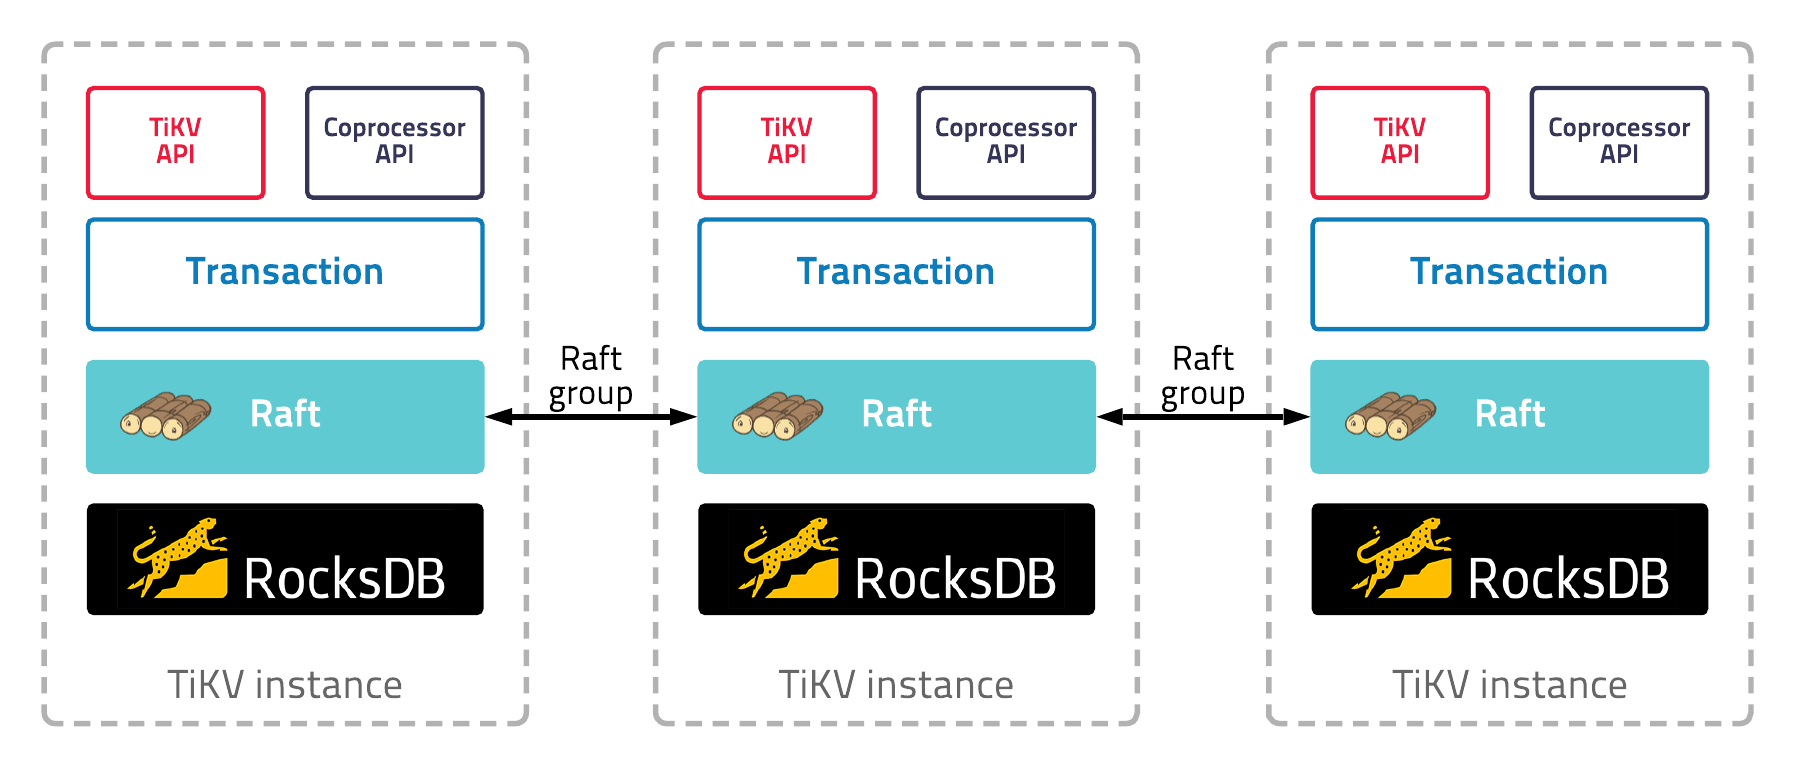 TiKV instance architecture diagram